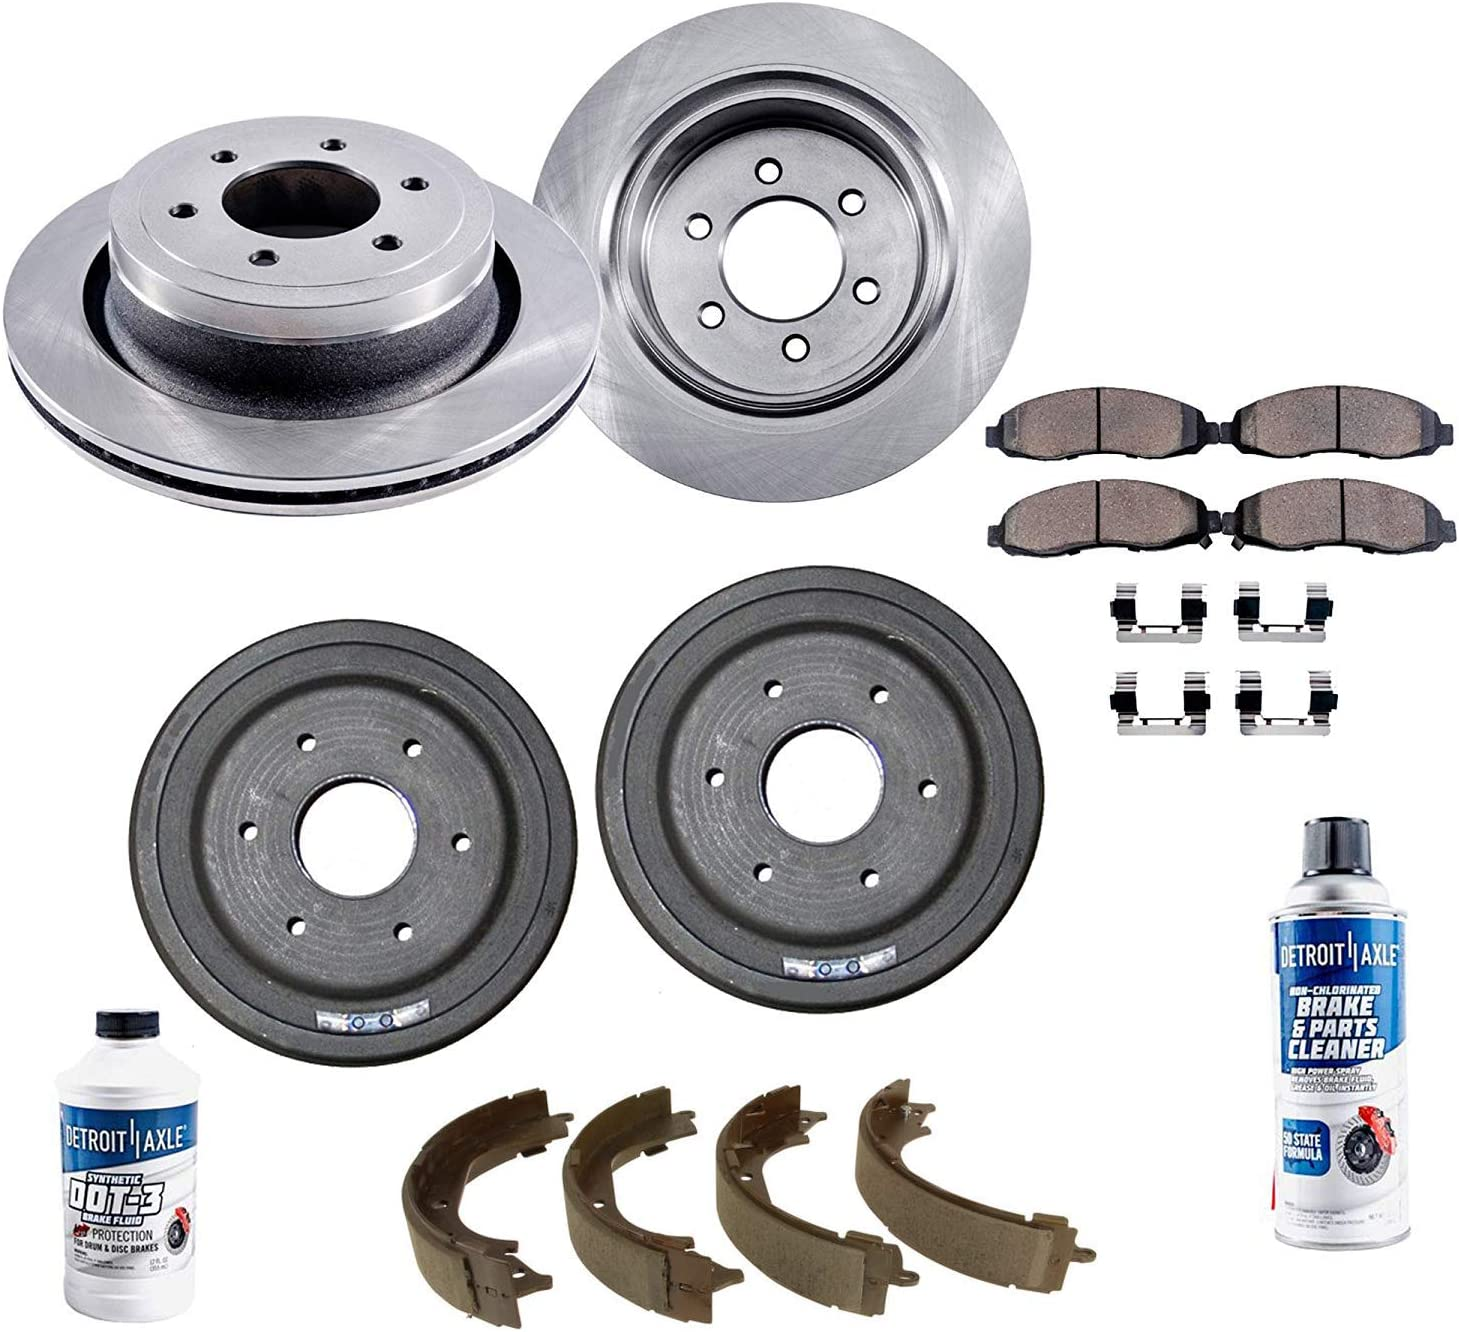 Detroit Axle - All (4) Front Disc Rotors and Rear Drum Brake Kit s w/Ceramic Pads w/Hardware & Brake Kit Cleaner & Fluid for 2009 2010 2011 2012 2013 Chevy Silverado 1500 / GMC Sierra 1500